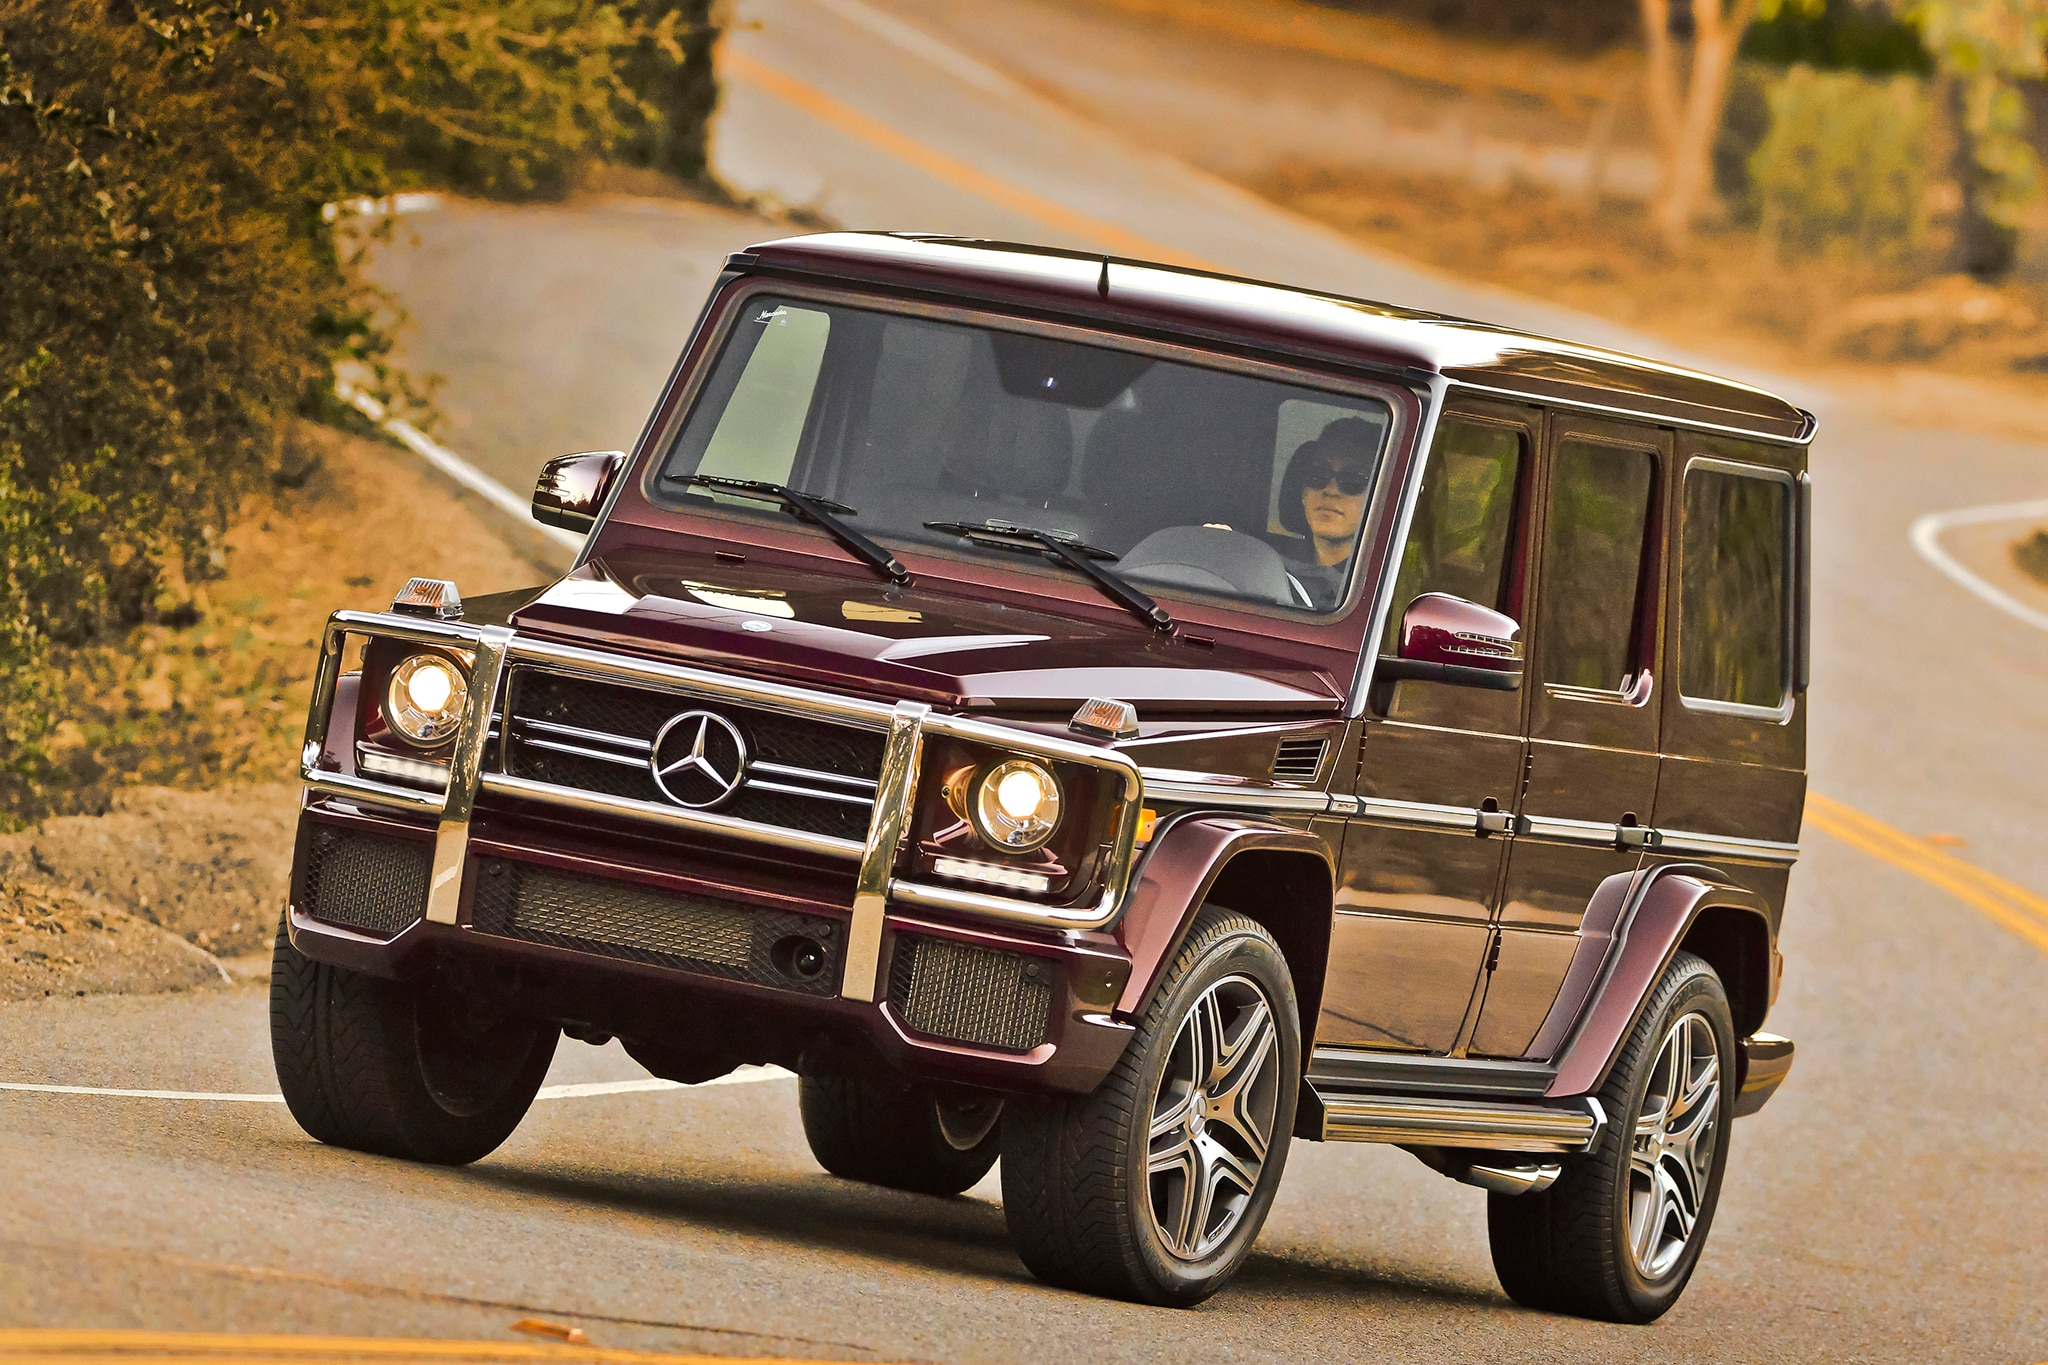 mansory modifies mercedes benz g63 amg 6x6 automobile magazine. Black Bedroom Furniture Sets. Home Design Ideas